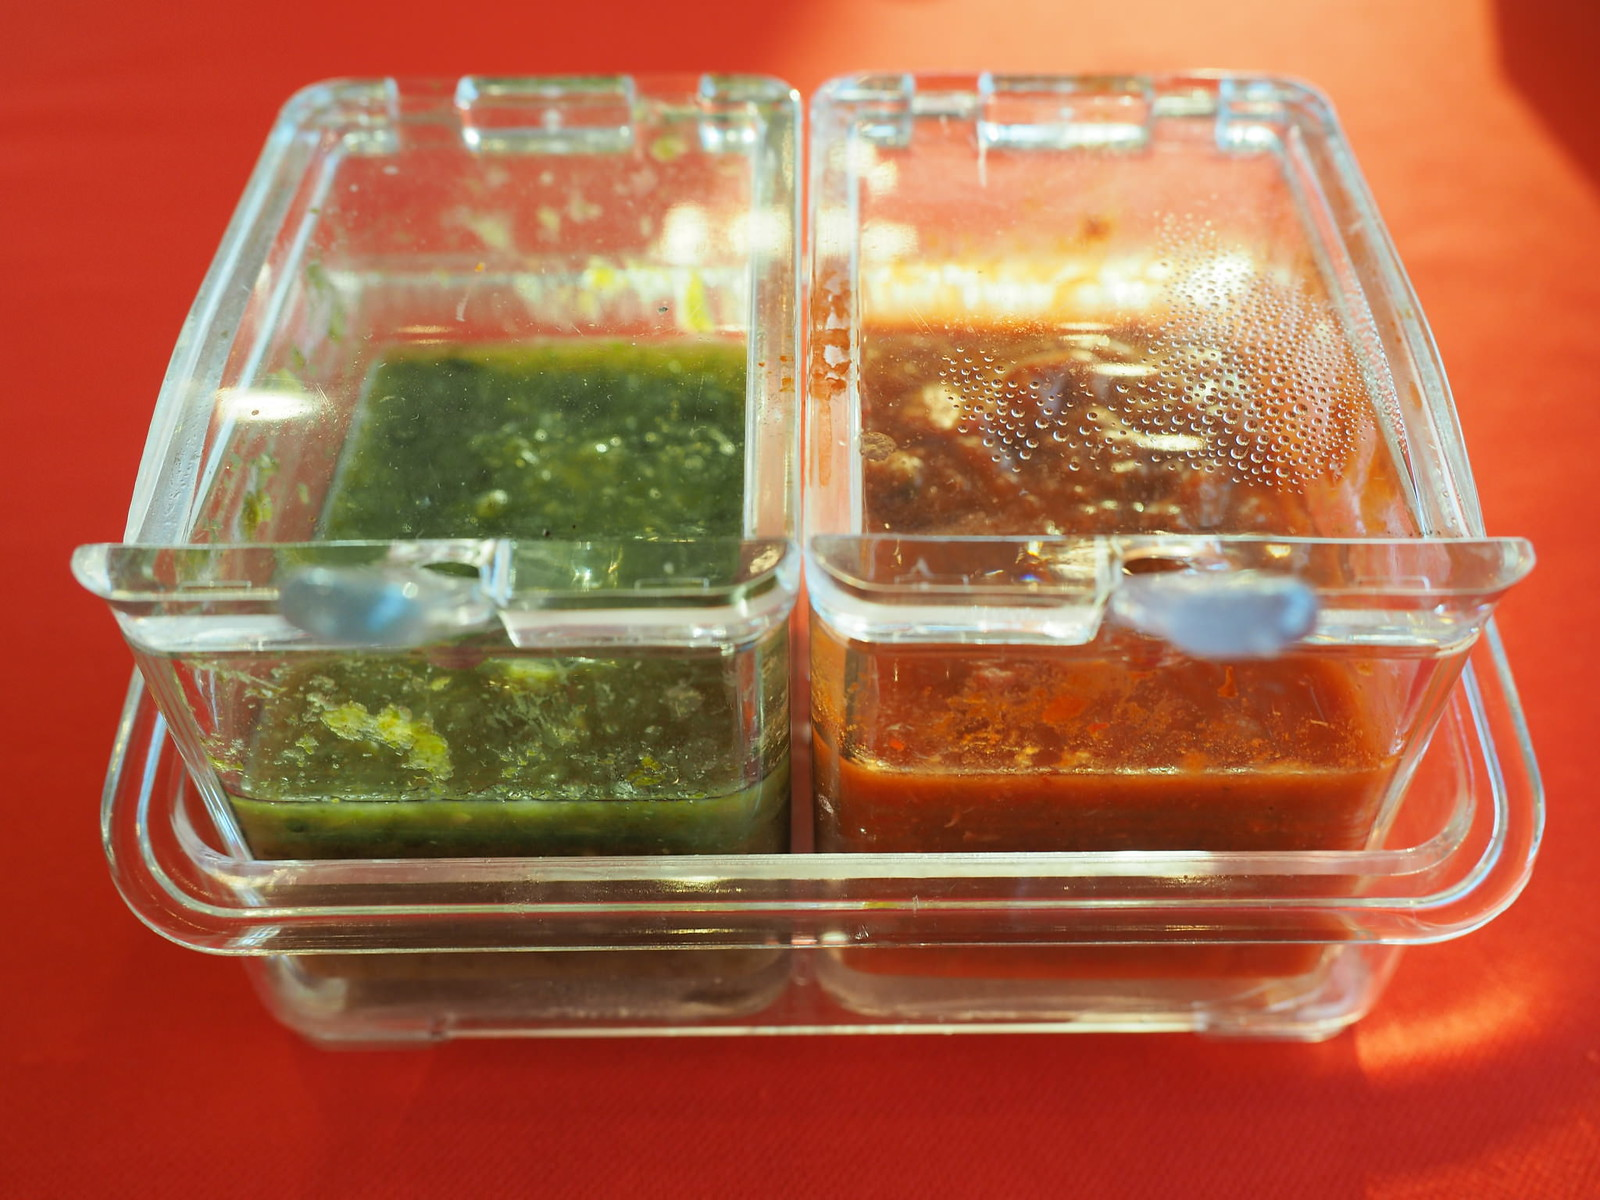 Two types of chili sauces for the steamboat